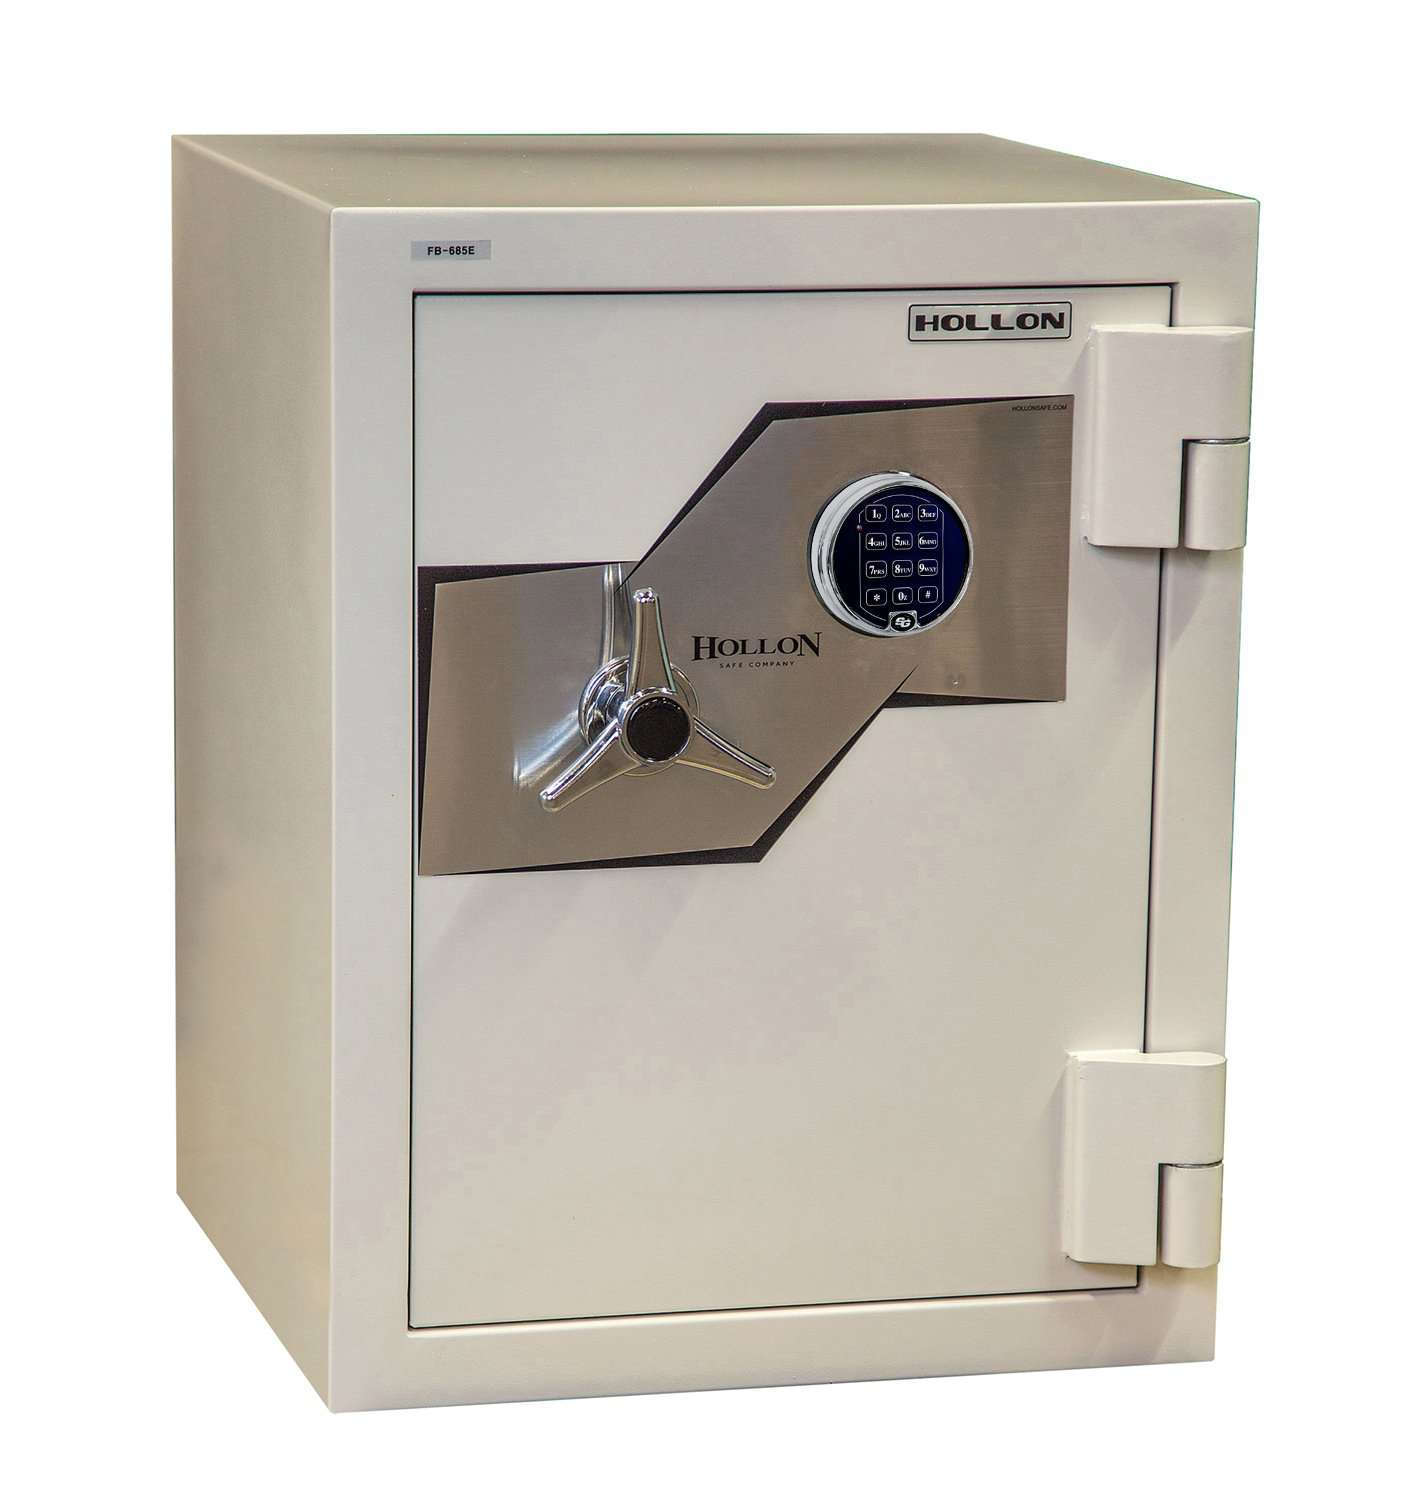 685-JD Series Glass Relocker Jewelry Safes